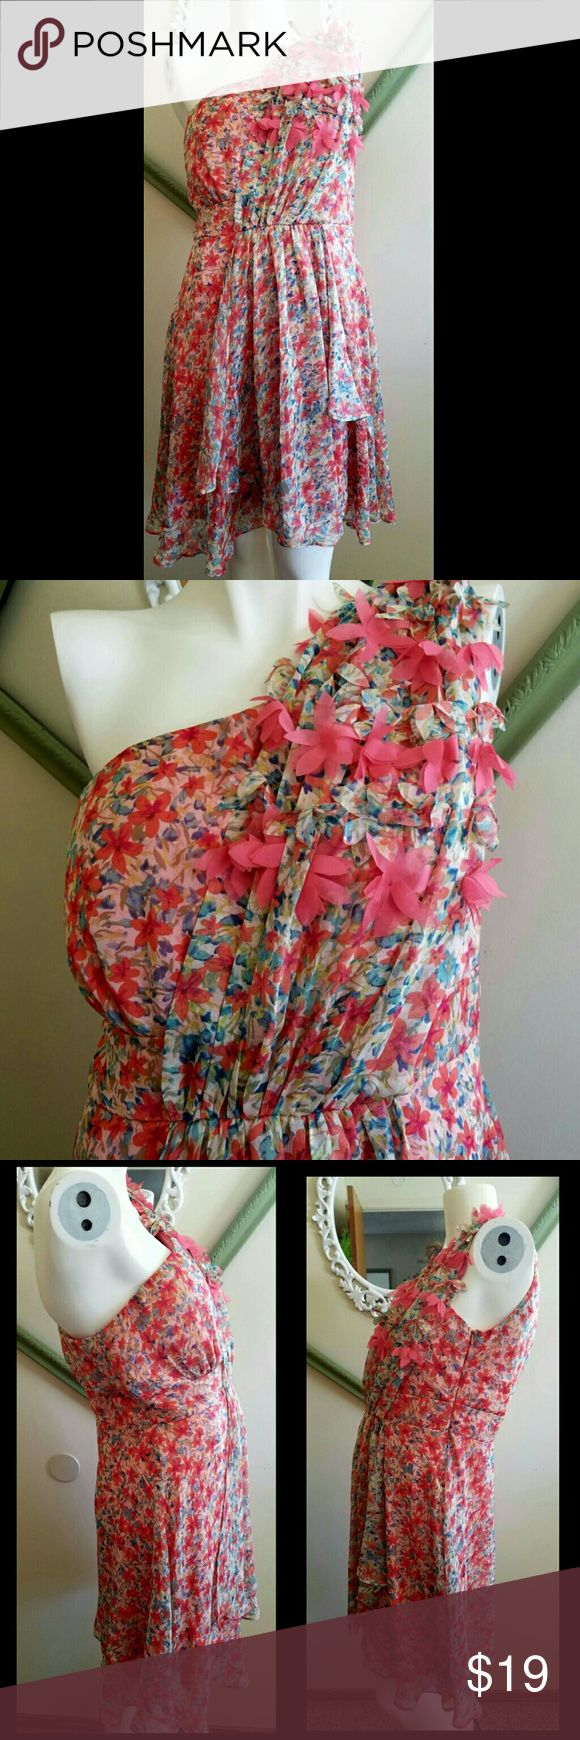 """One Shoulder Strap Dress. Gently loved. Colors: coral, peach, orange, green and blue. Zipper on the side. Lined. Has extra strip of fabric with coral flowers. Flowy. Below the knee. 100% polyester.   Measurements  Bust 37"""" - 38"""" Waist 29"""" - 30.5""""  Hip 39.5"""" - 41""""  Length 34.5"""" ( from top of strap to bottom) Inseam length 28.5"""" (underarm down to bottom)   Get an additional 30% off when purchasing 3 or more items using the bundle feature. Always willing to negotiate. Aniina Dresses One…"""